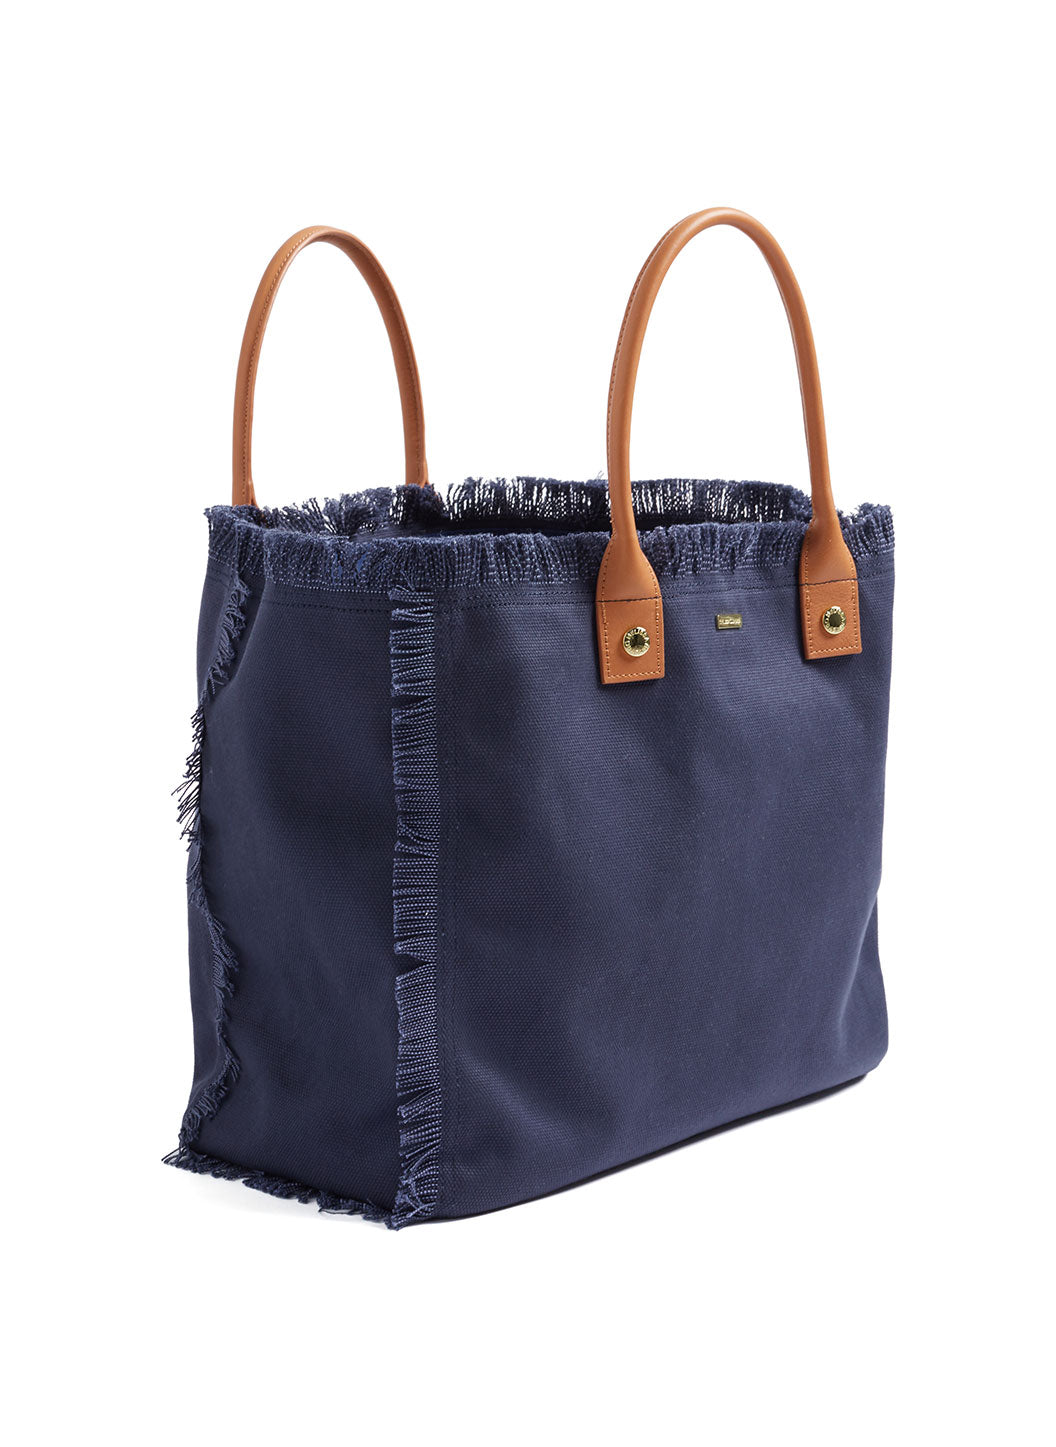 Melissa Odabash Capferrat Large Beach Tote Navy - Melissa Odabash Accessories